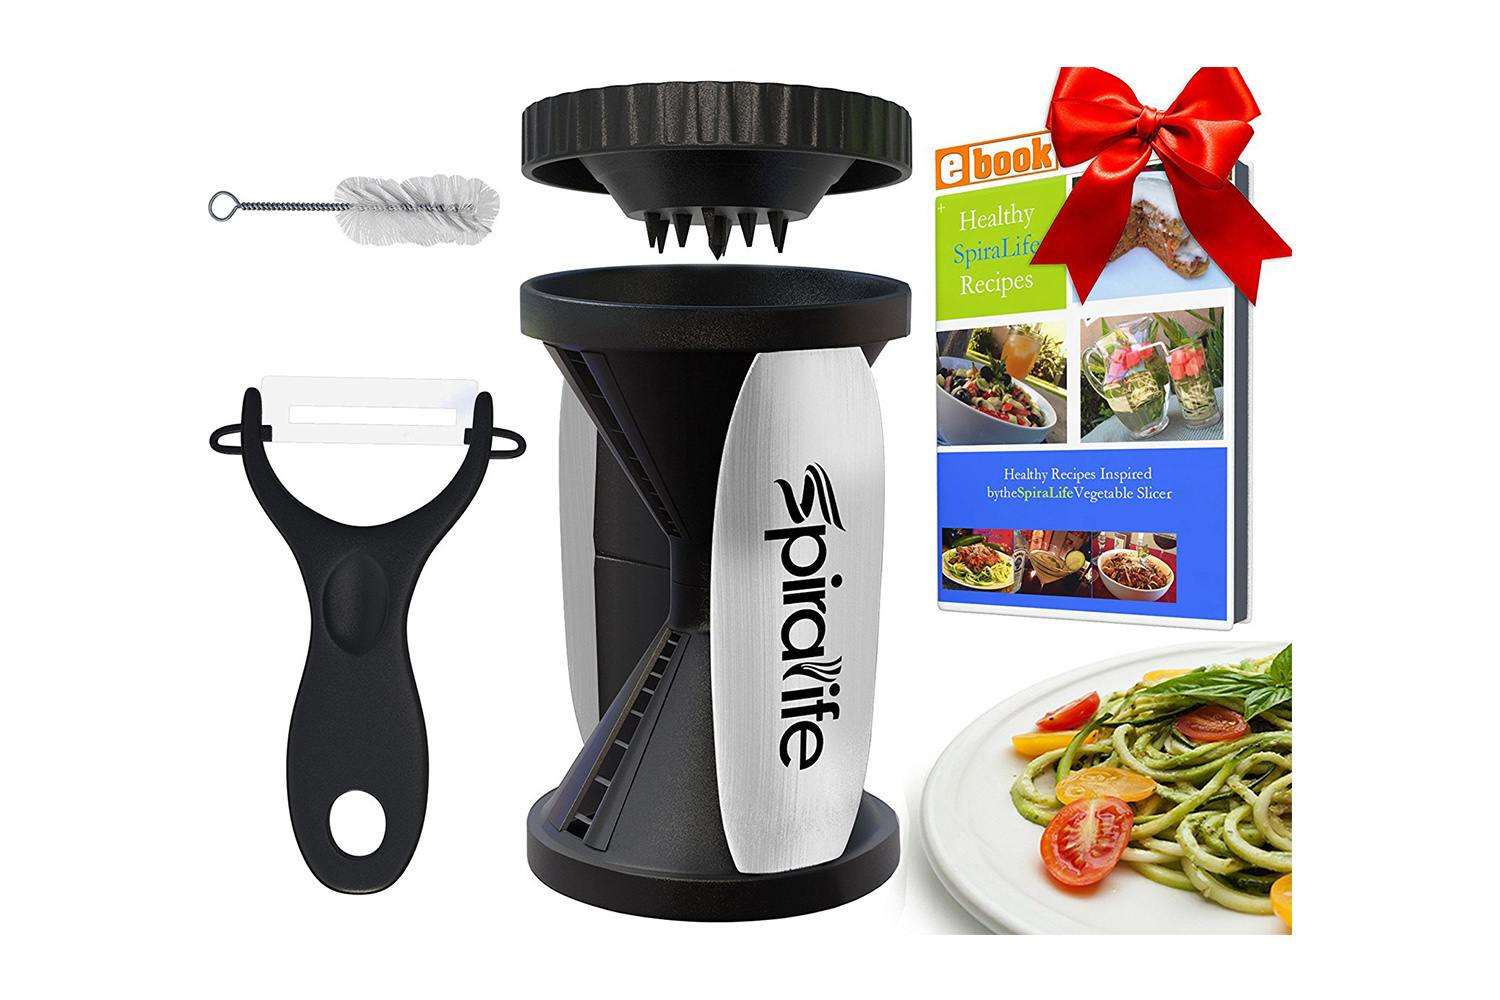 SpiraLife Best Vegetable Spiralizer